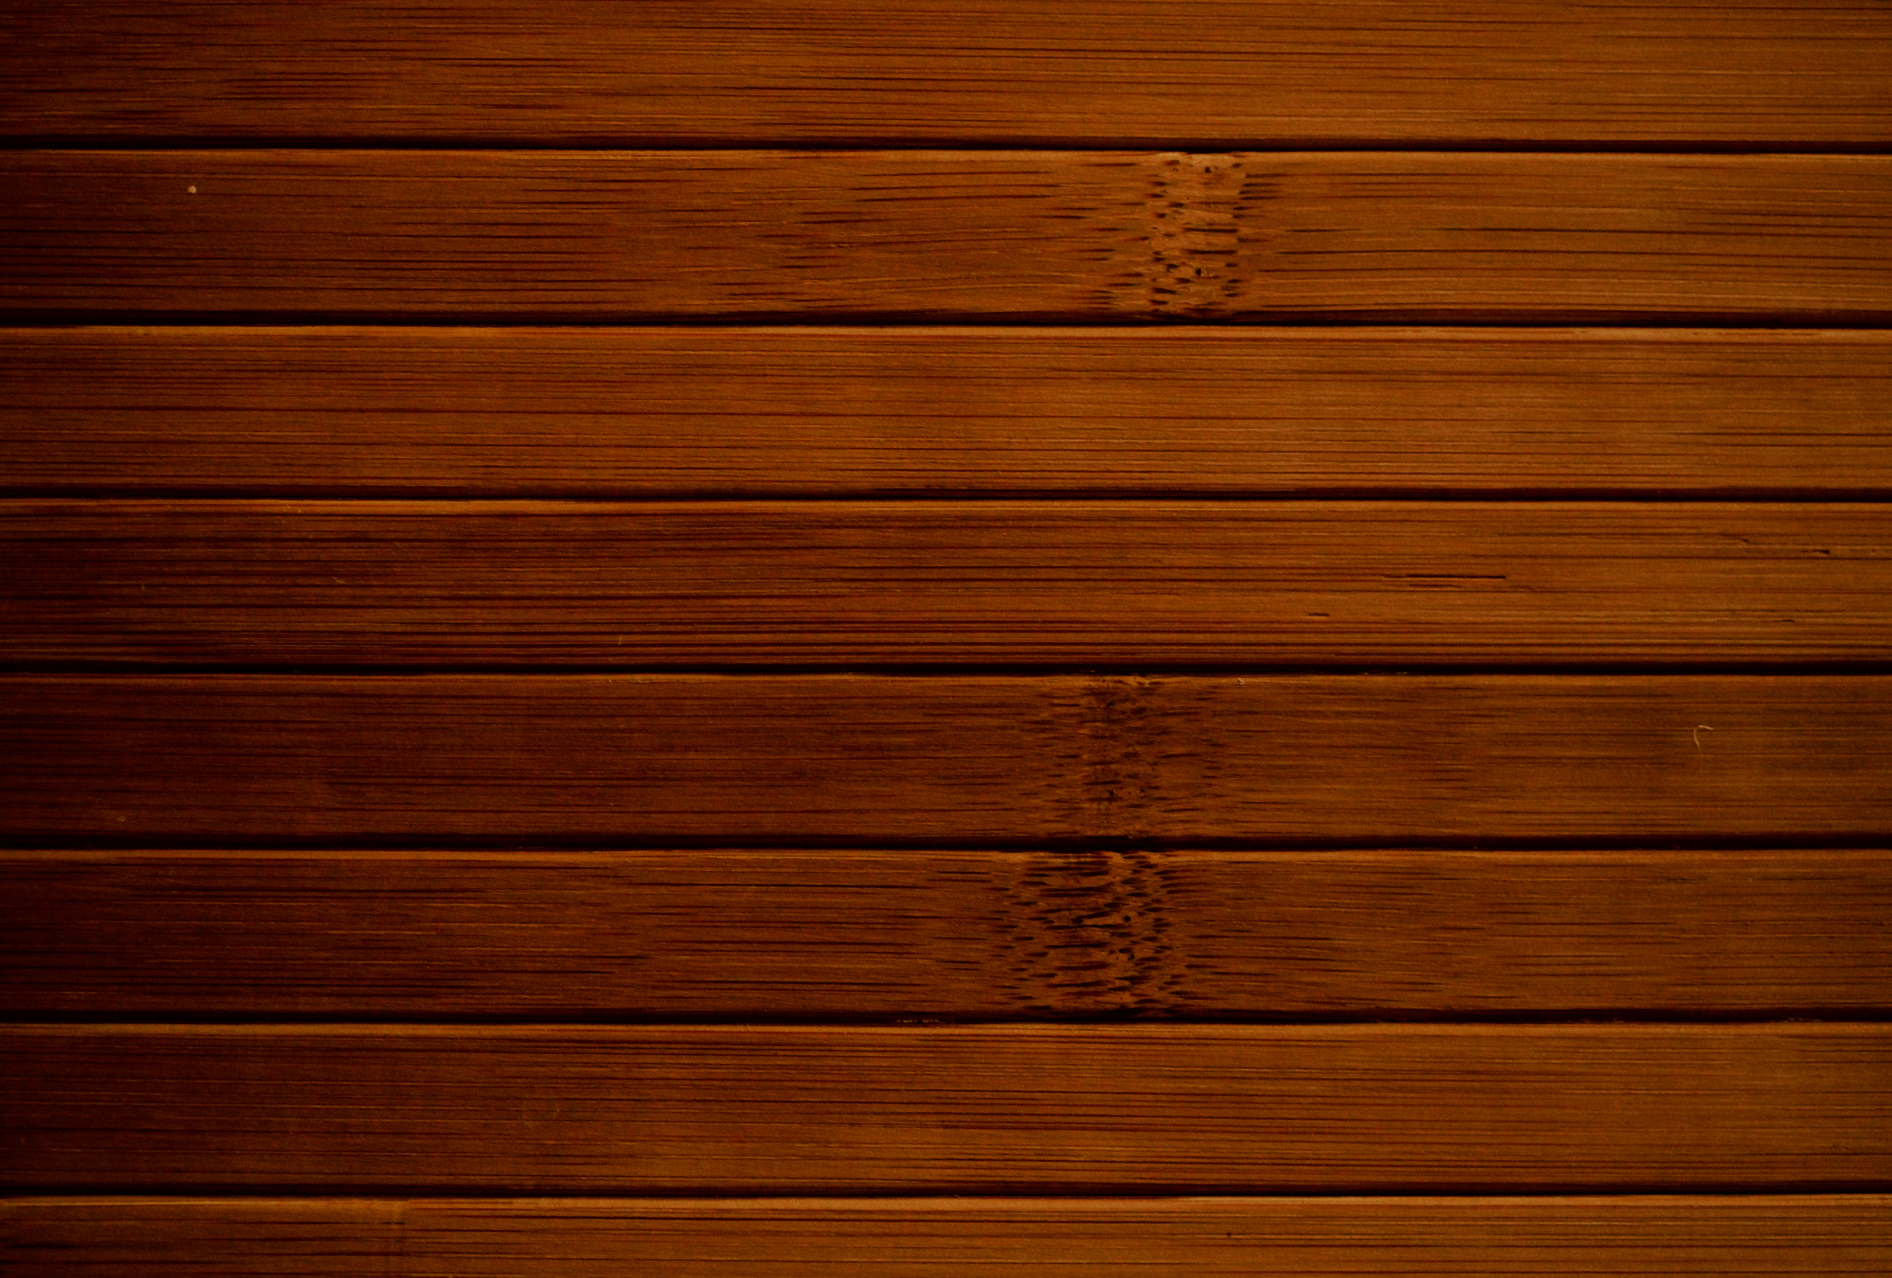 20 Awesome Free Wood Plank Textures | TechTBH